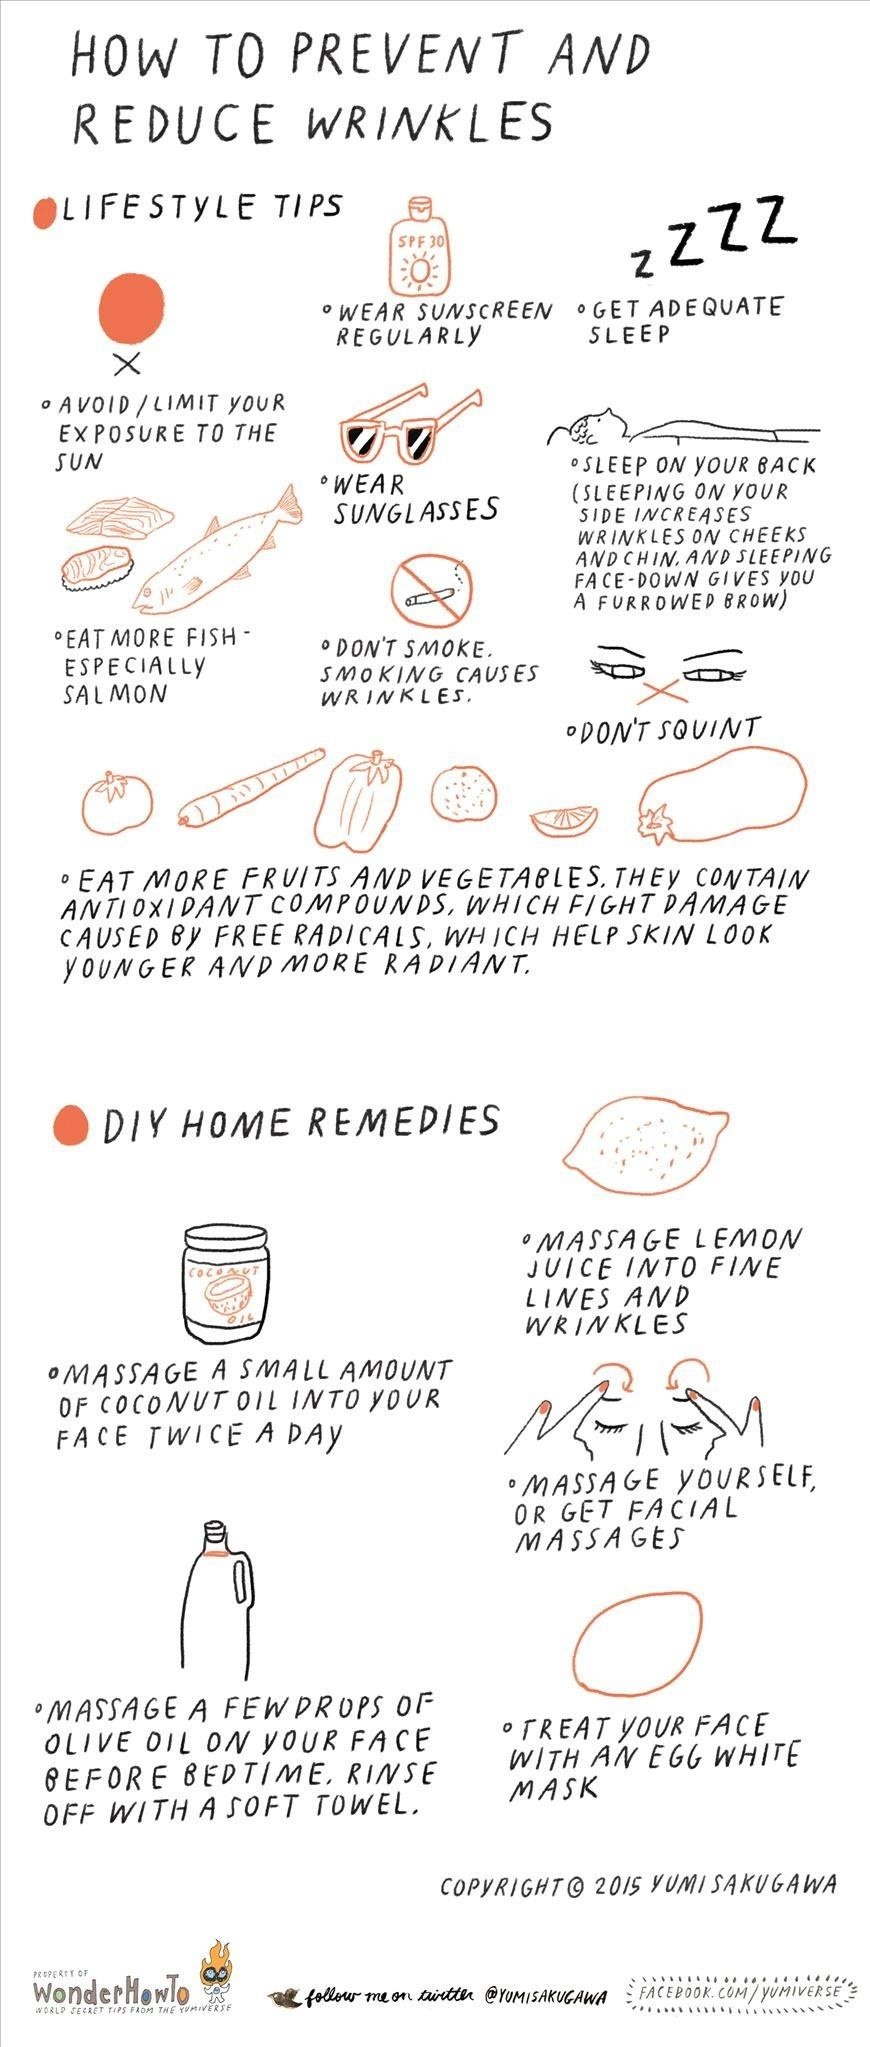 14 Ways to Reduce & Prevent Wrinkles